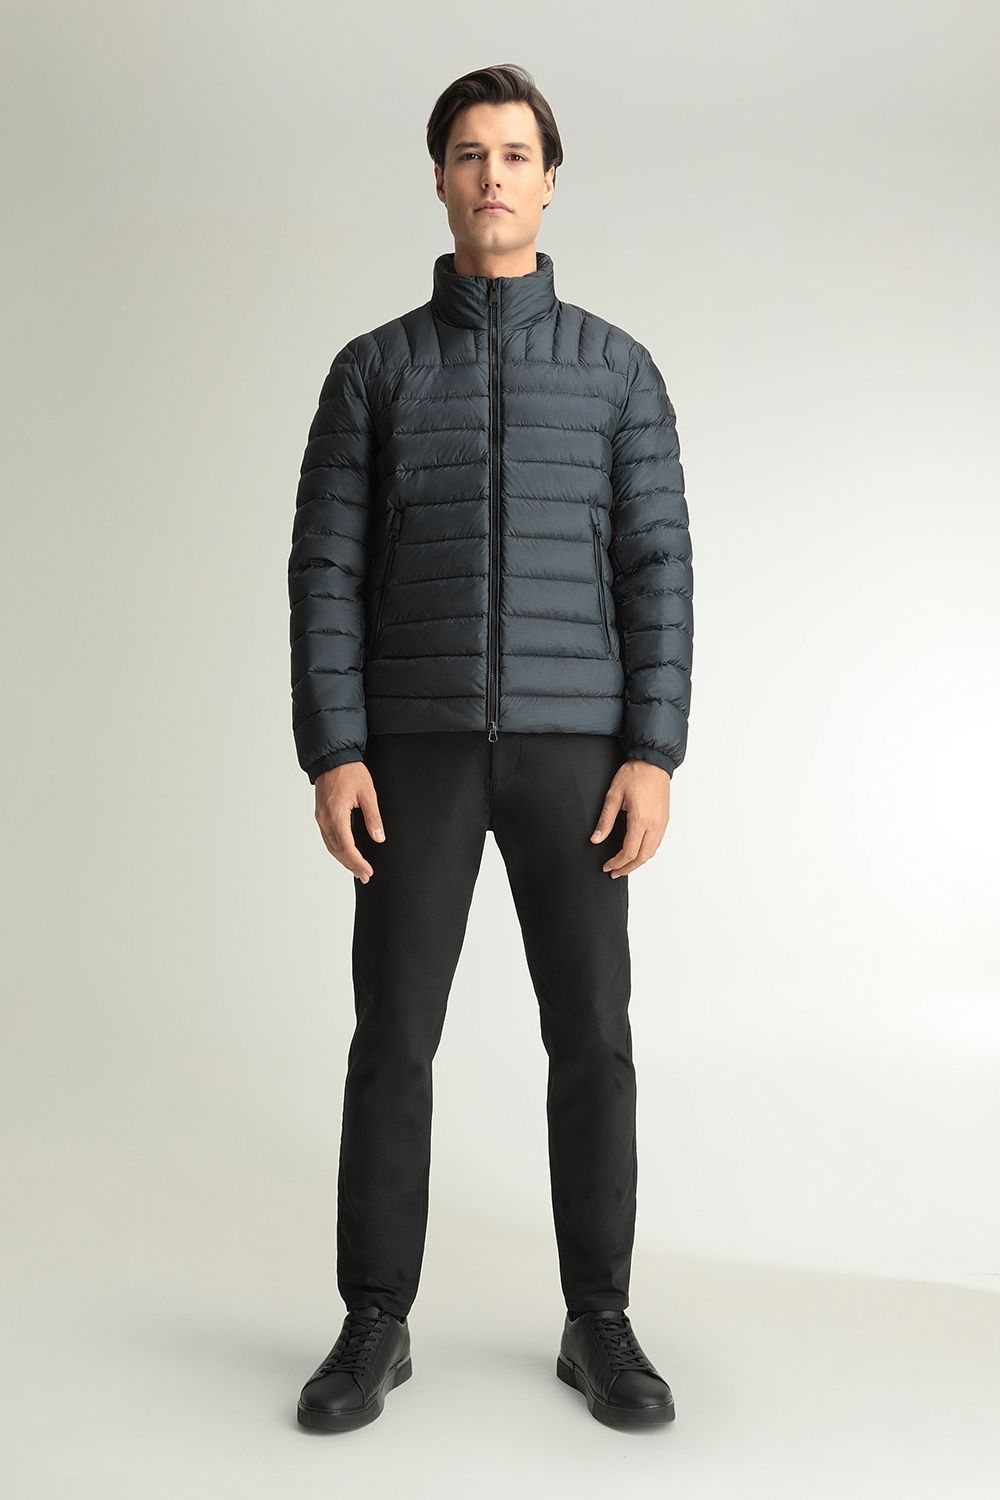 Quincy hooded blue jacket